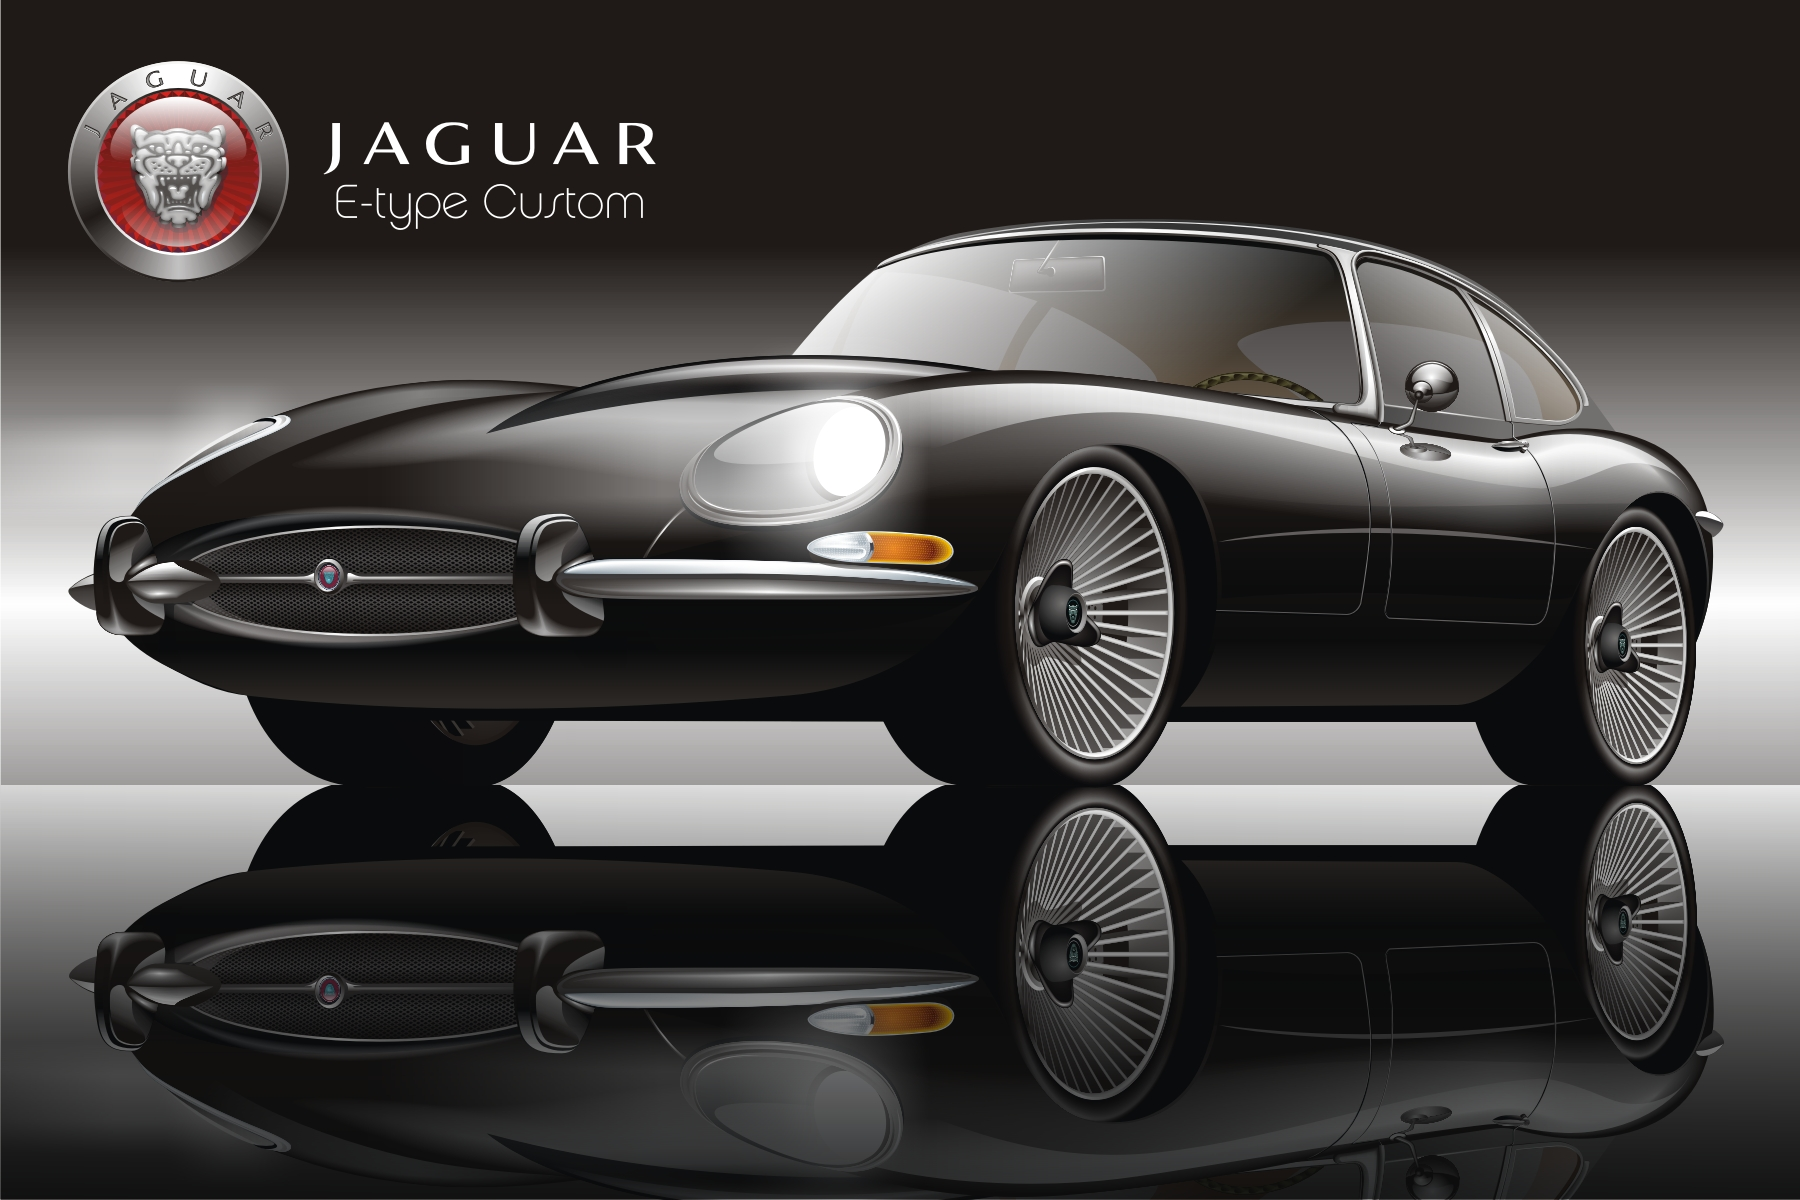 Jaguar E Type (black)   Sonny Leonu0027s Gallery   Community Galleries  (PQRS)   CorelDRAW Community